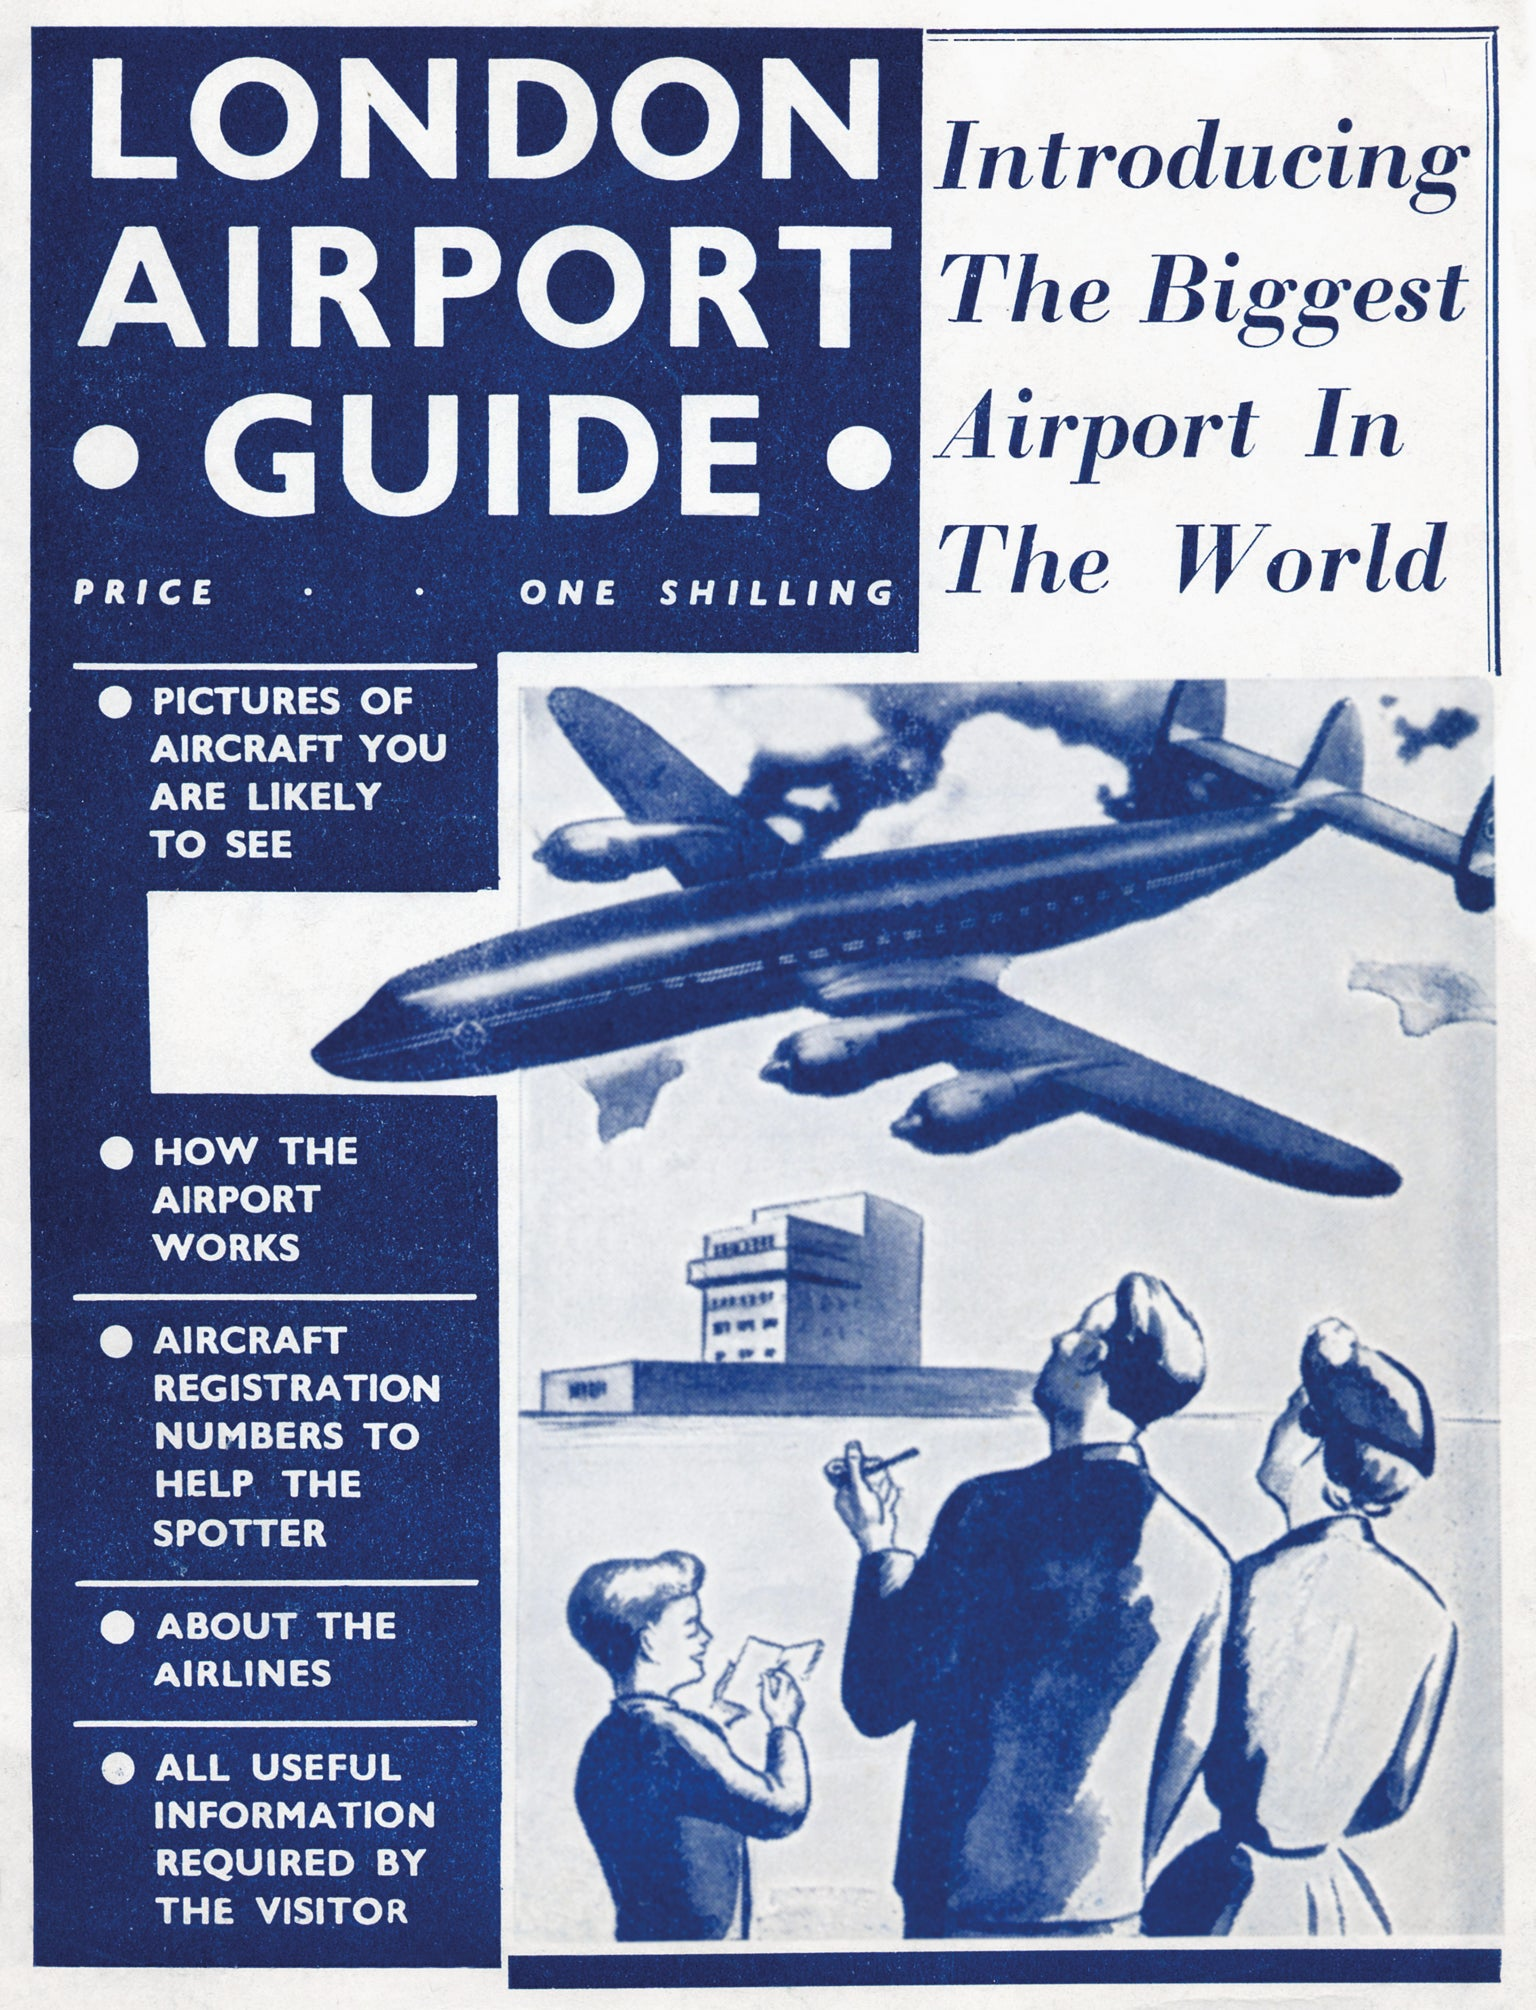 One of the first official London Airport guidebooks